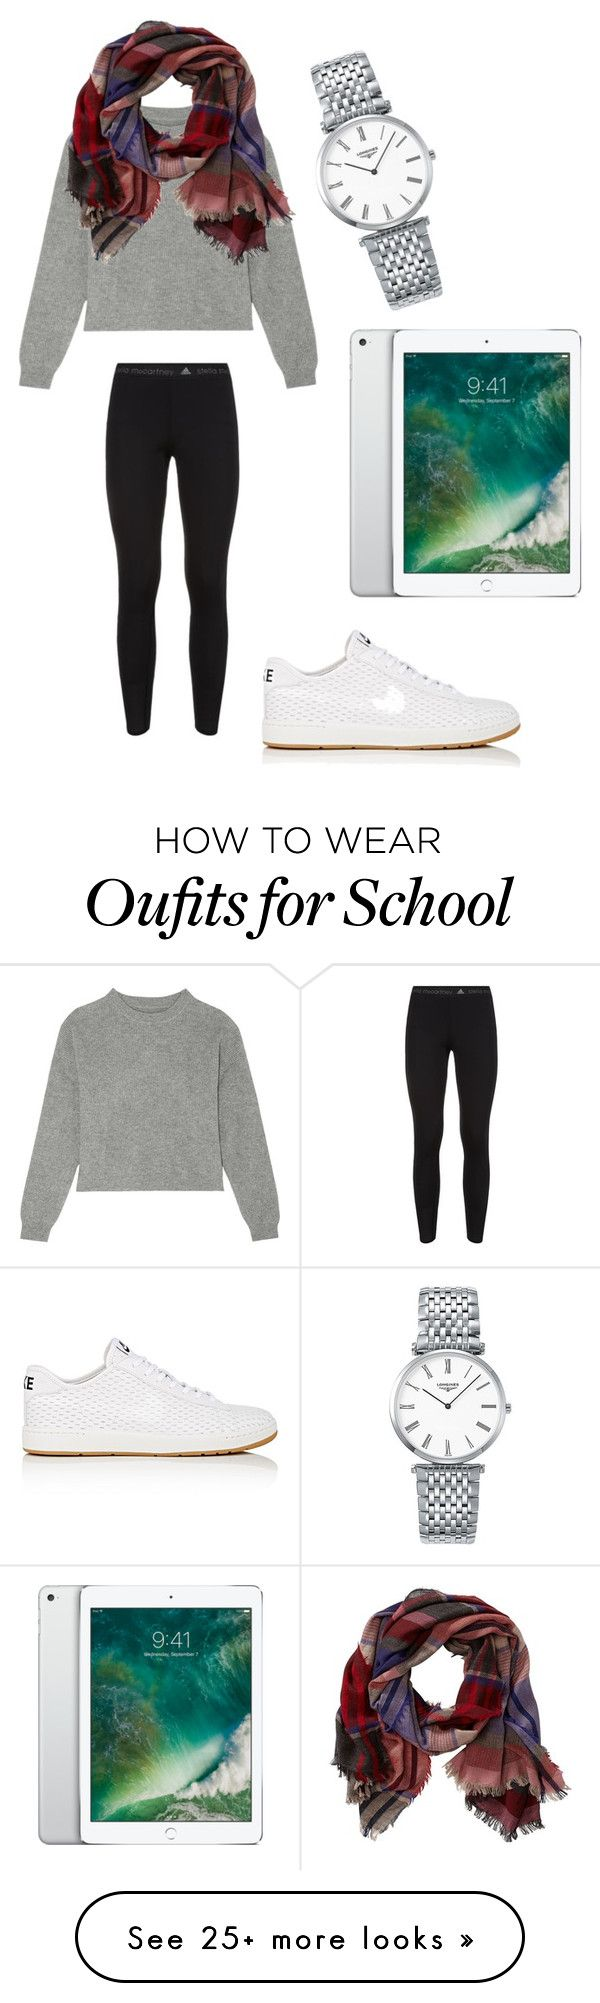 """Big presentation at school today"" by sarahfohlen on Polyvore featuring adidas, Longines, NIKE, Frame Denim, TravelSmith, Fall and 2k16"